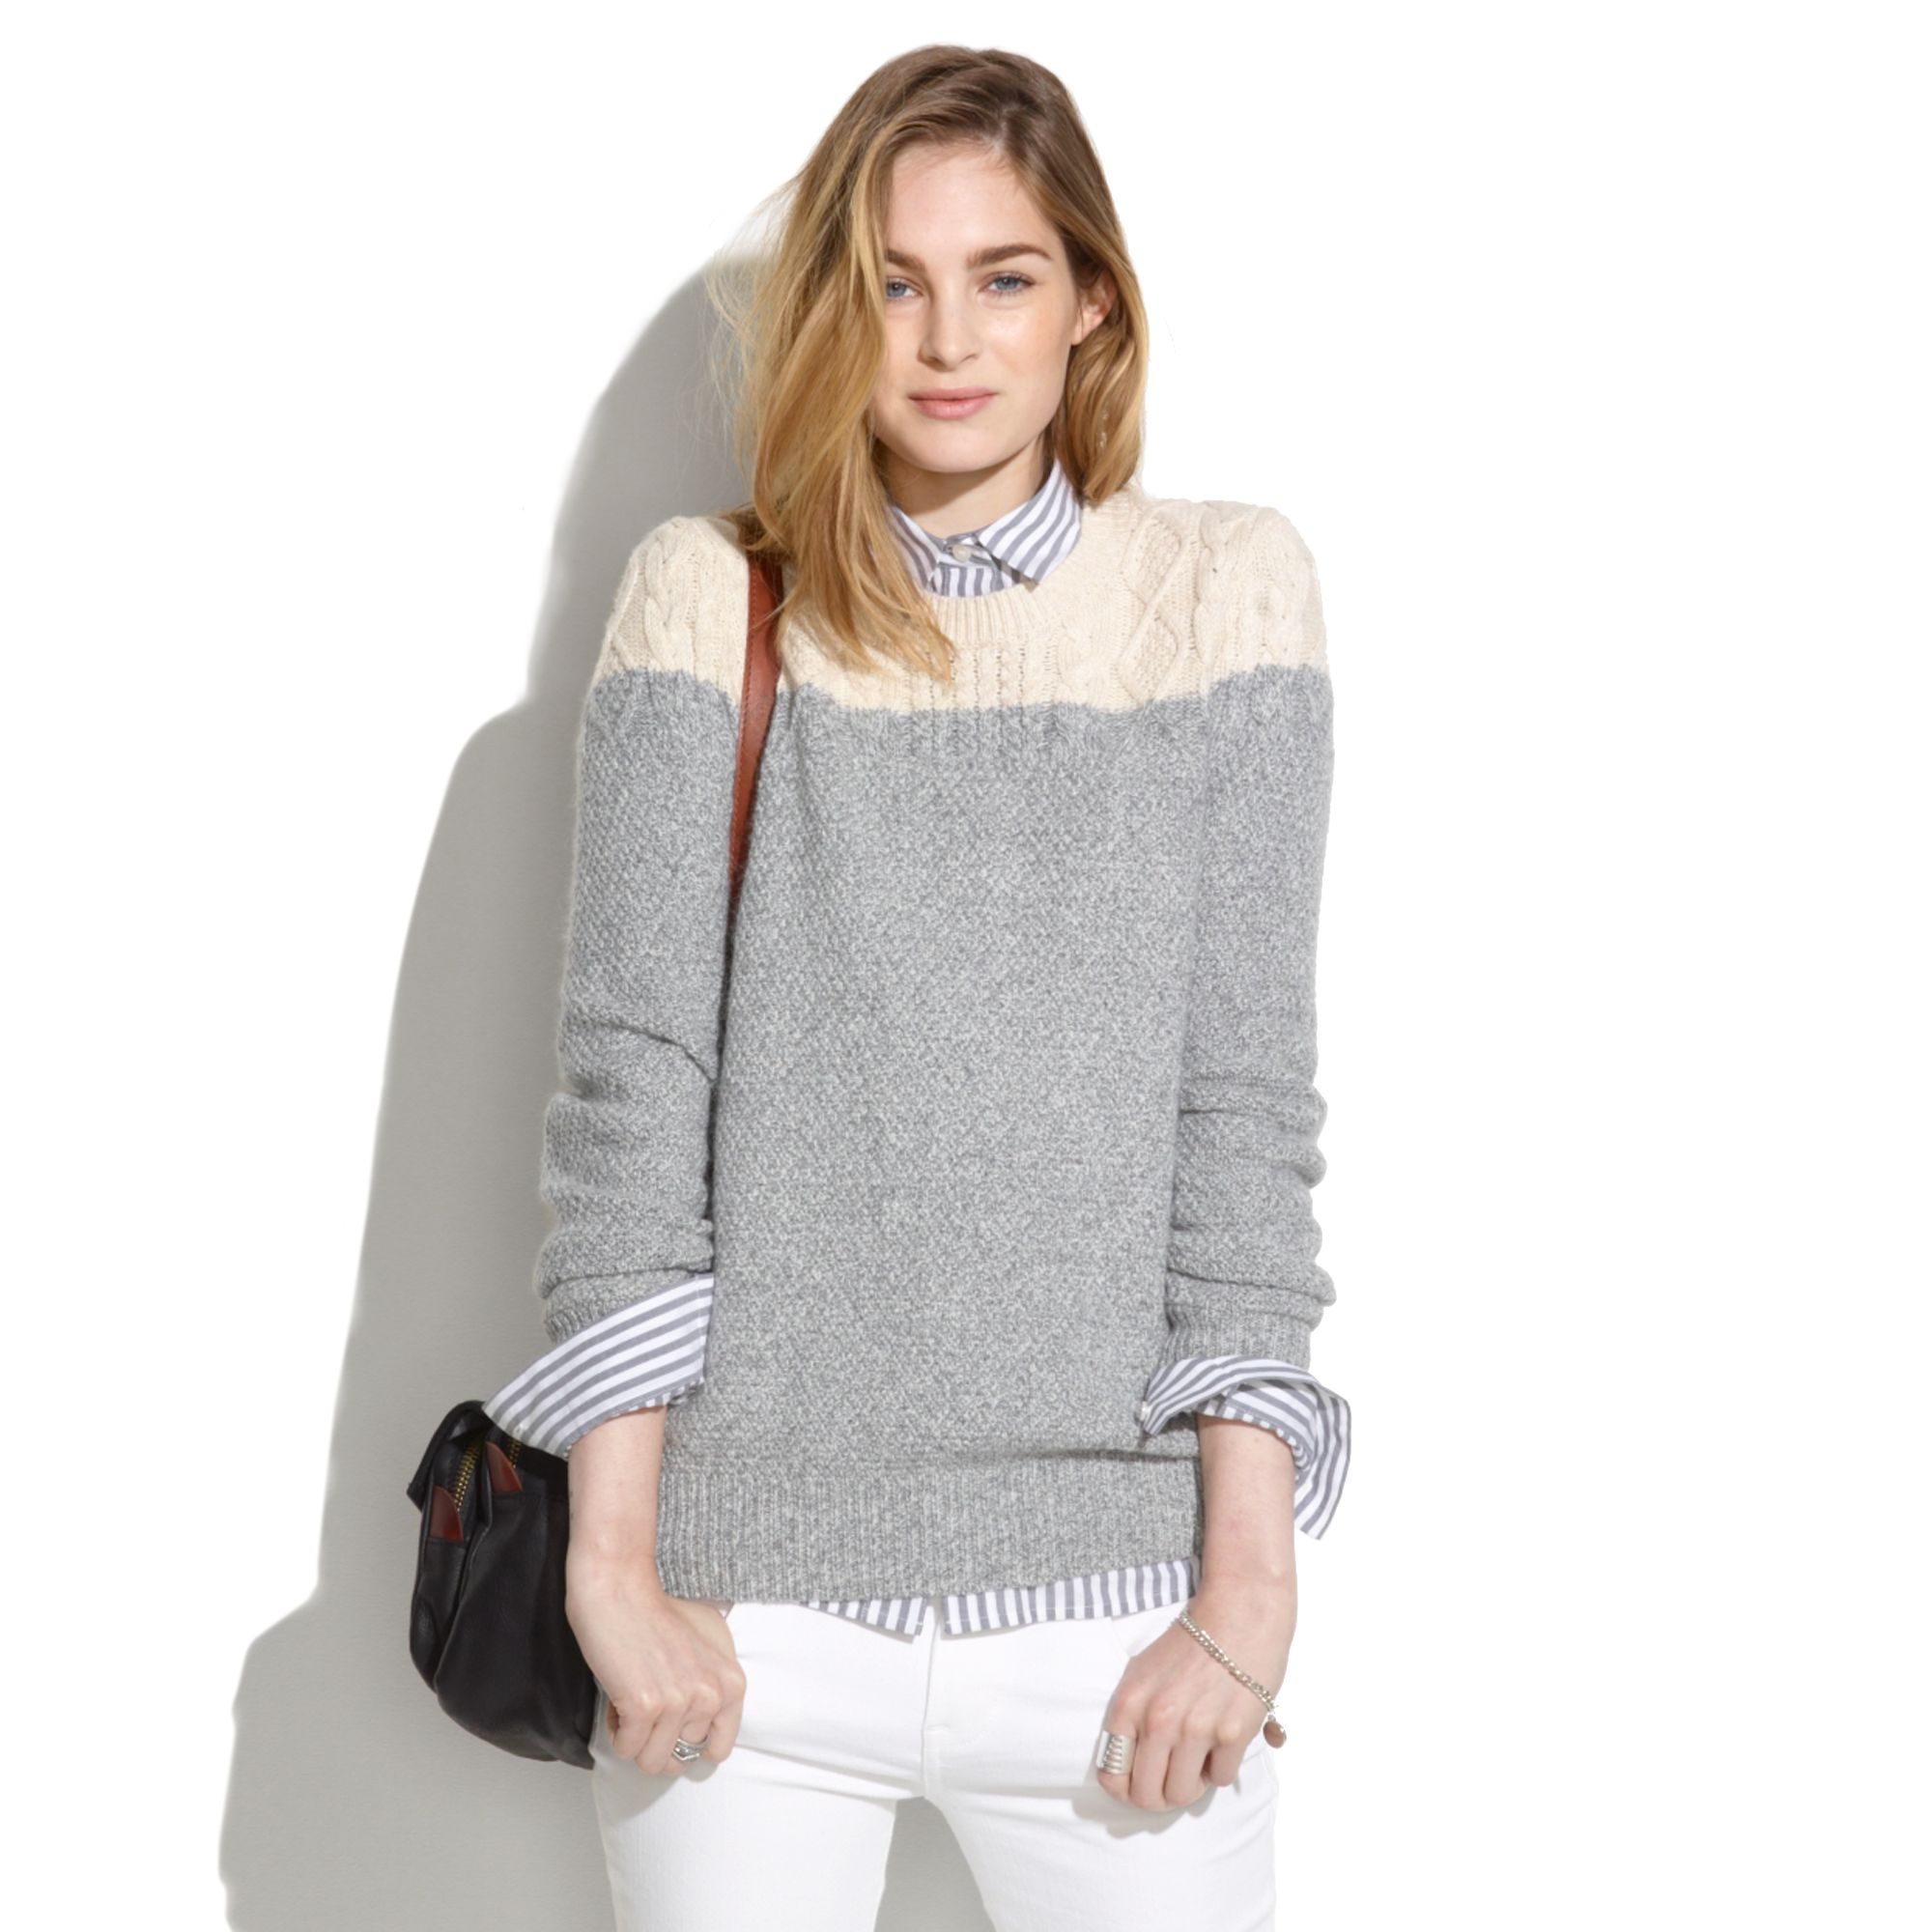 9da348a662 Madewell Colorblock Cable Knit Sweater in Gray - Lyst